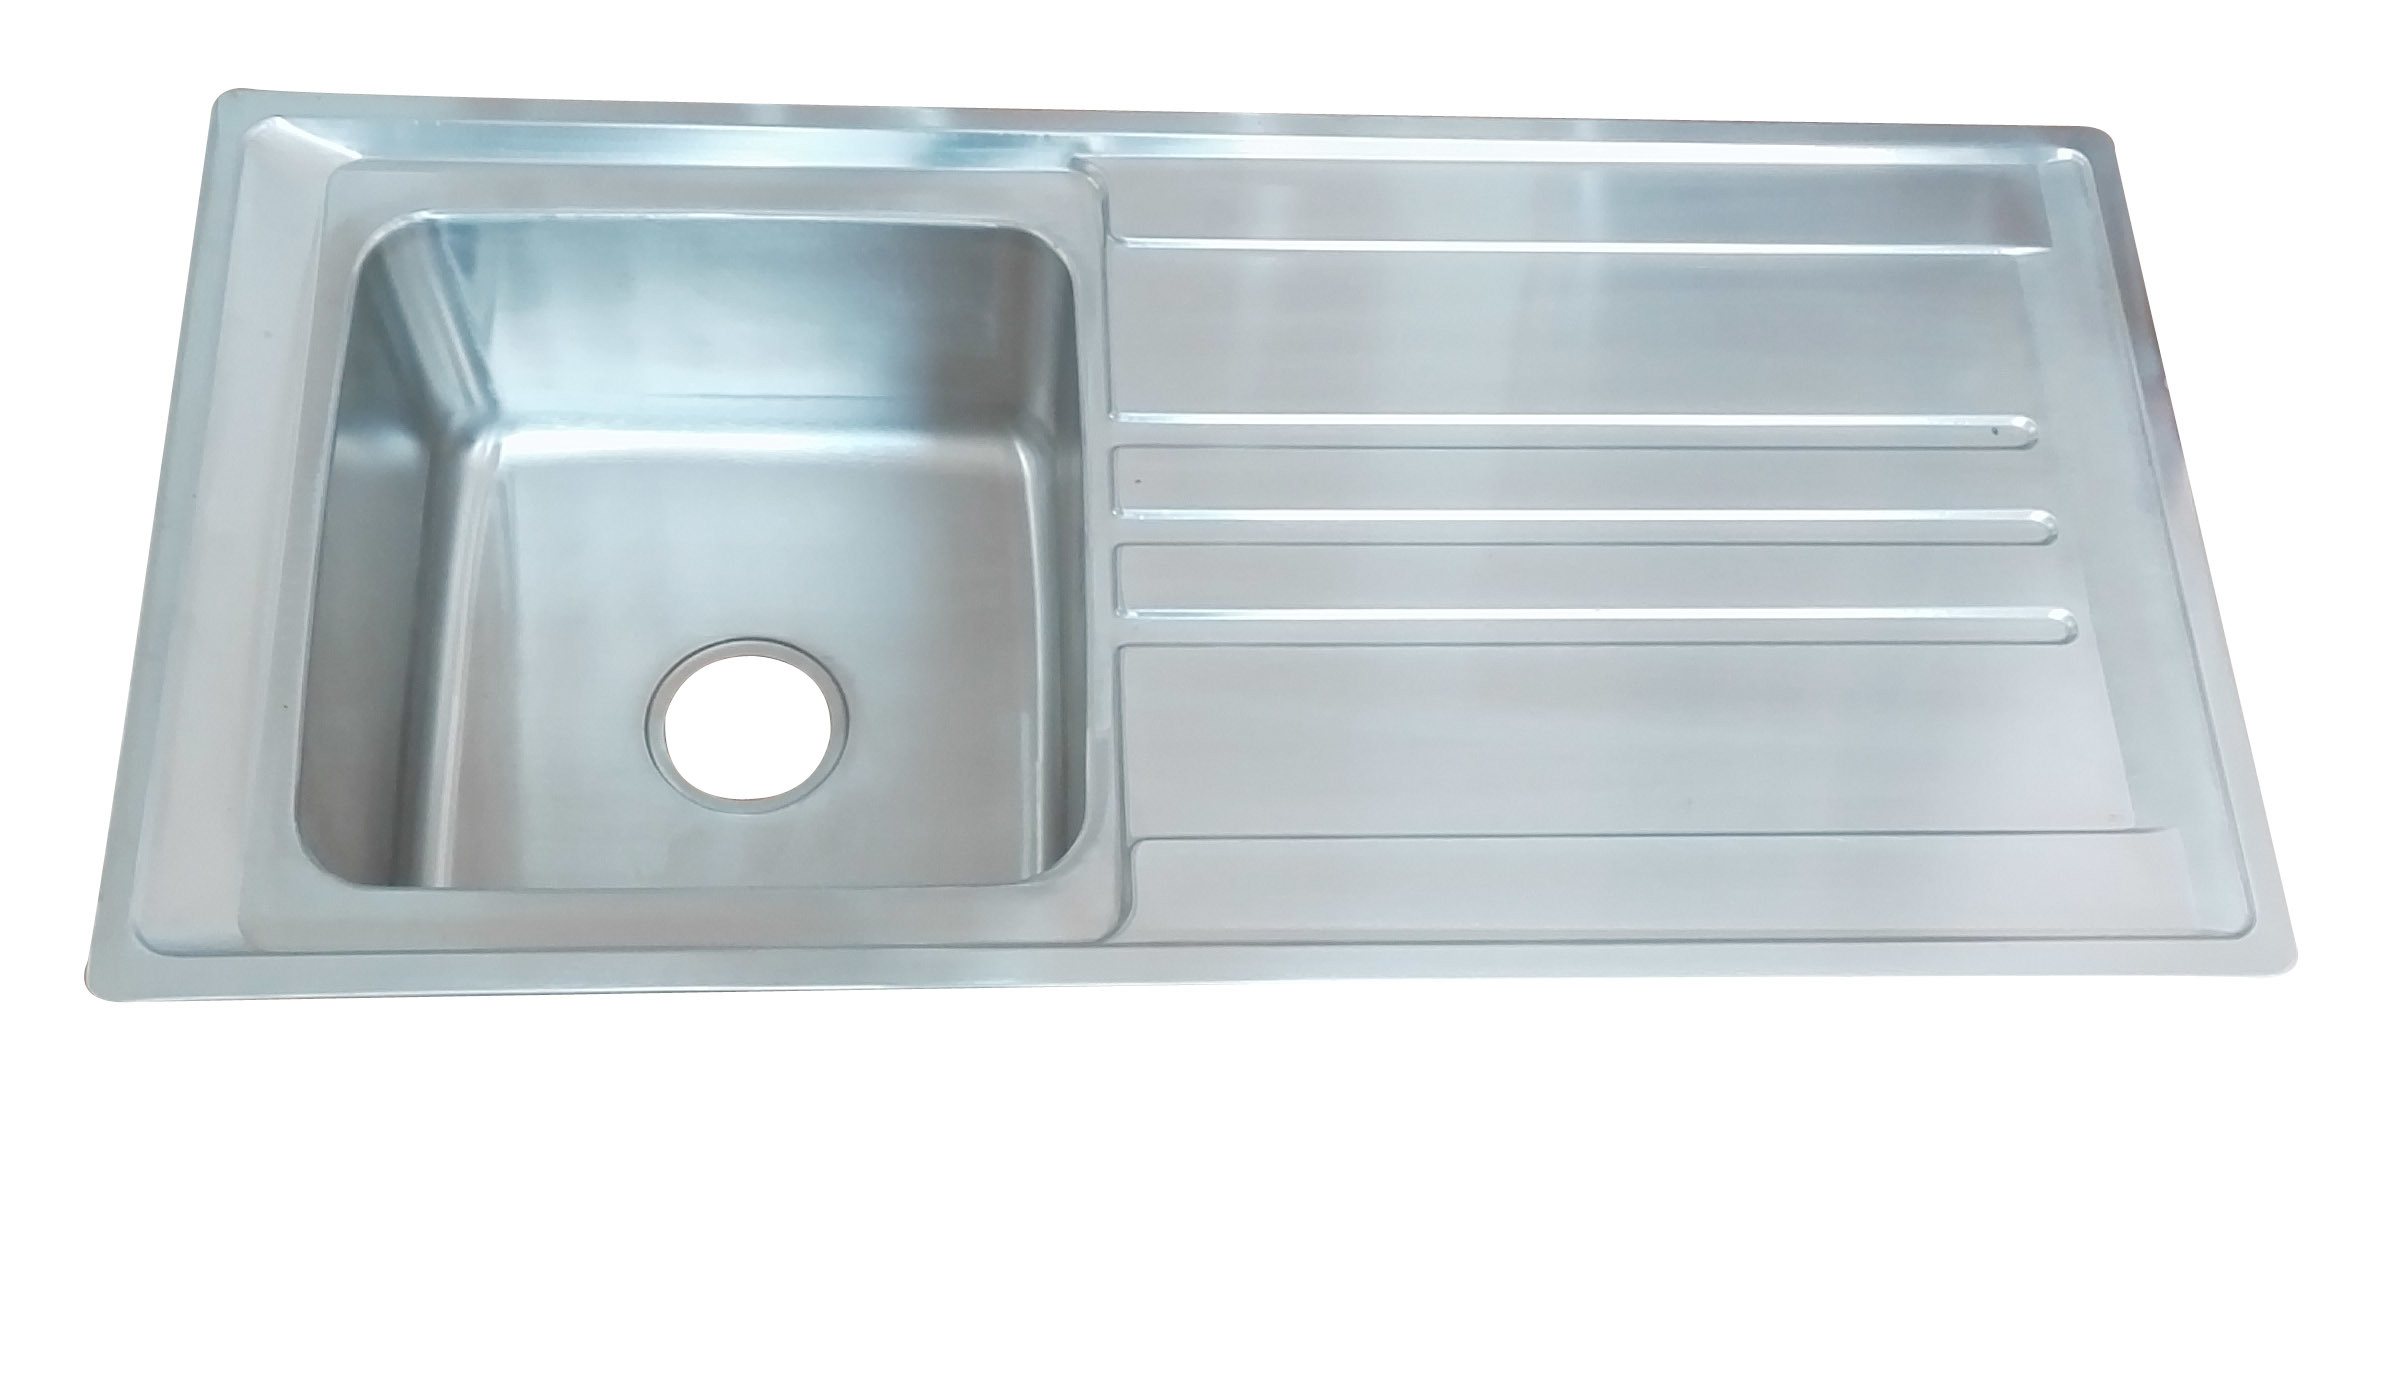 hot item single bowl 10050 stainless steel above counter wash kitchen sink with cutting board